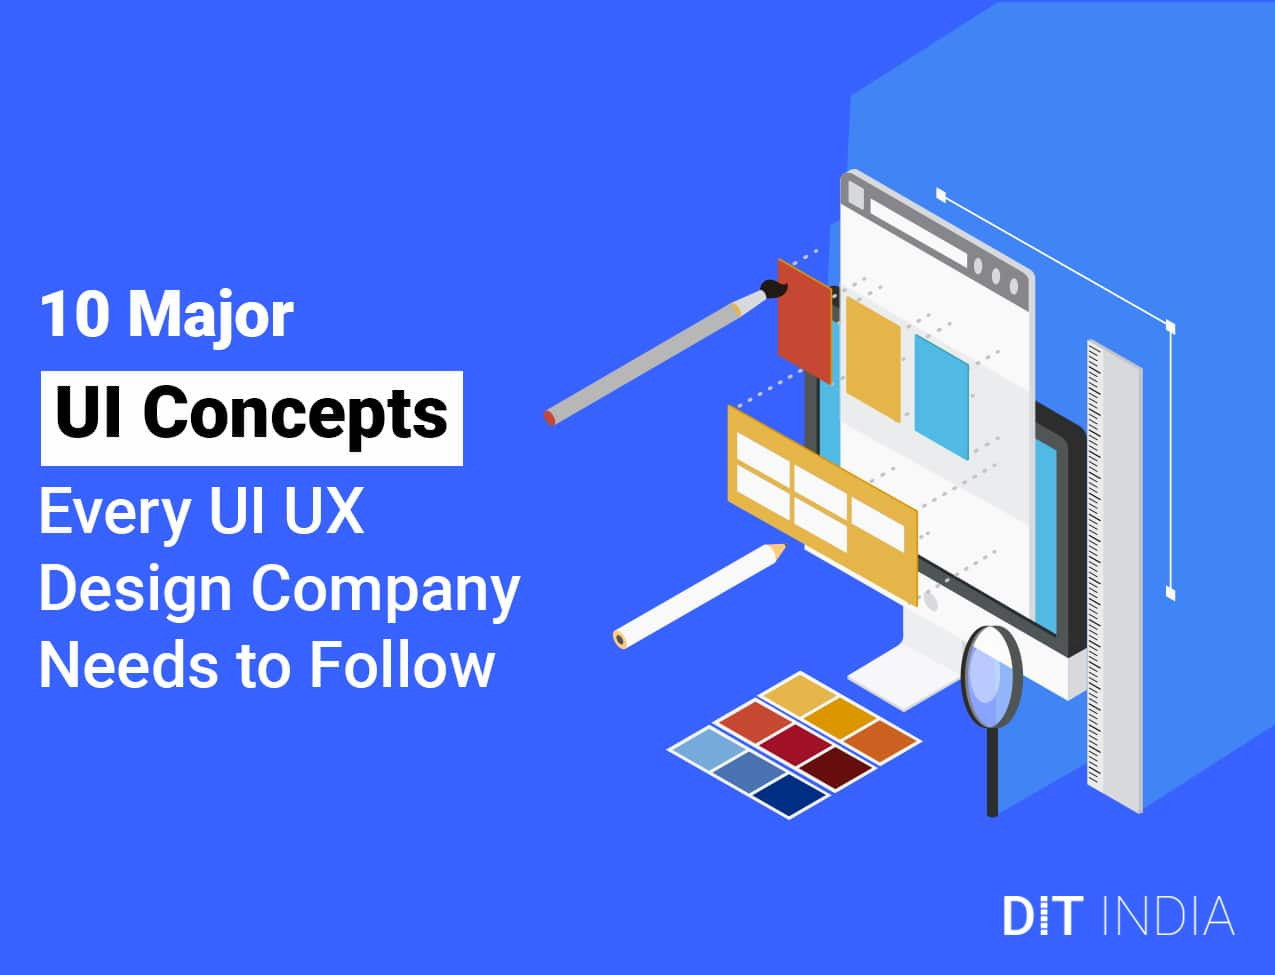 10-Major-UI-Concepts-Every-UI-UX-Design-Company-Needs-to-Follow